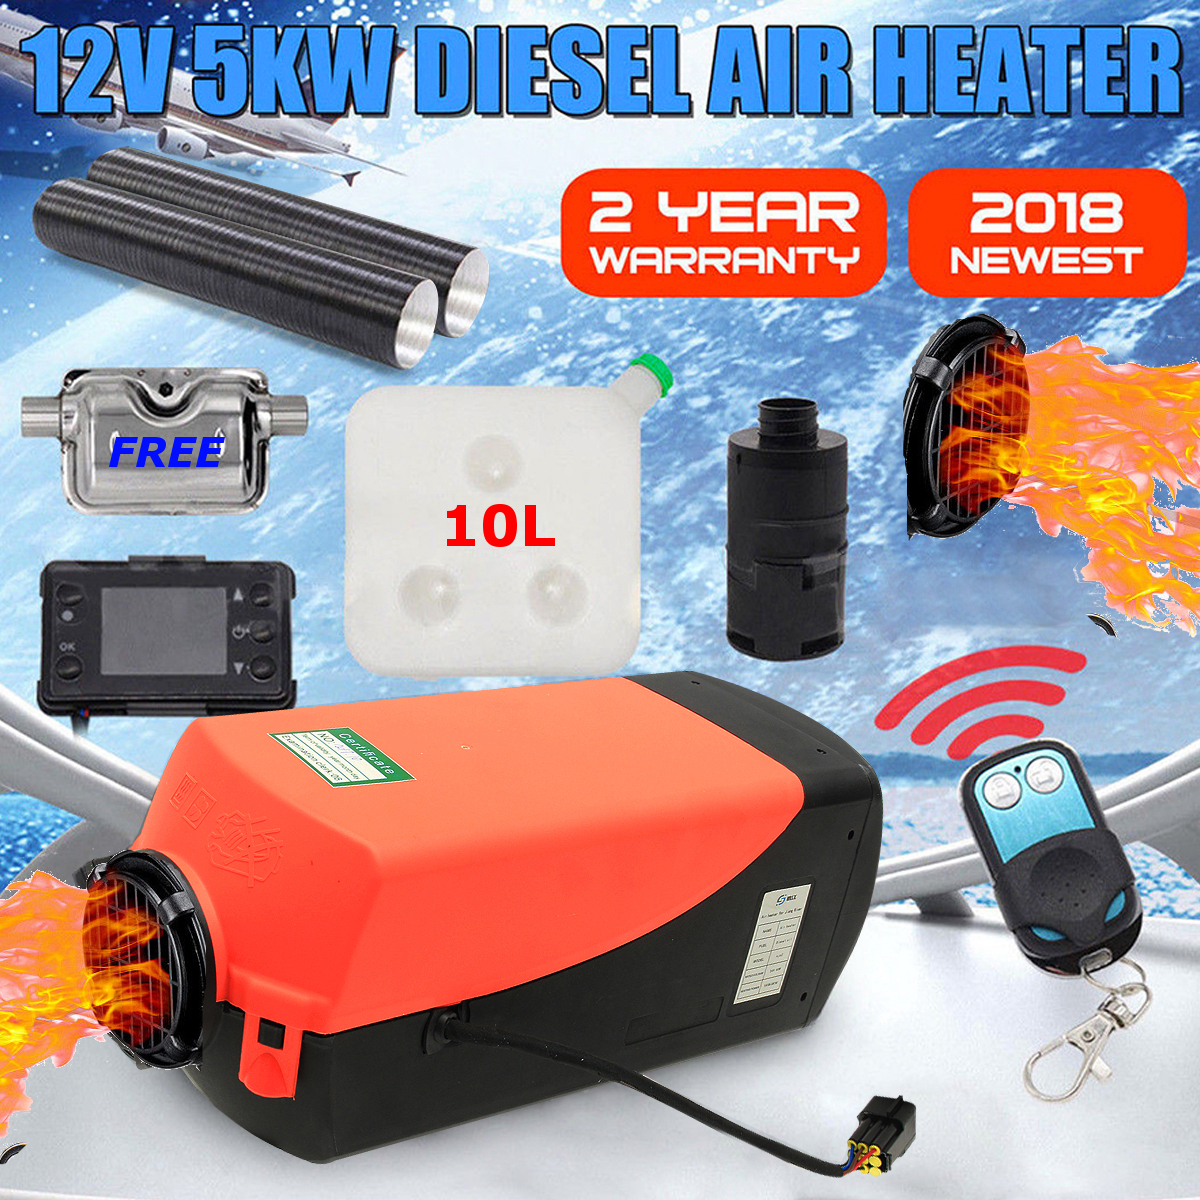 Fuel-Heater Boats Silencer Lcd-Monitor Remote-Control Air-Diesels 5000W Free 12V 5KW